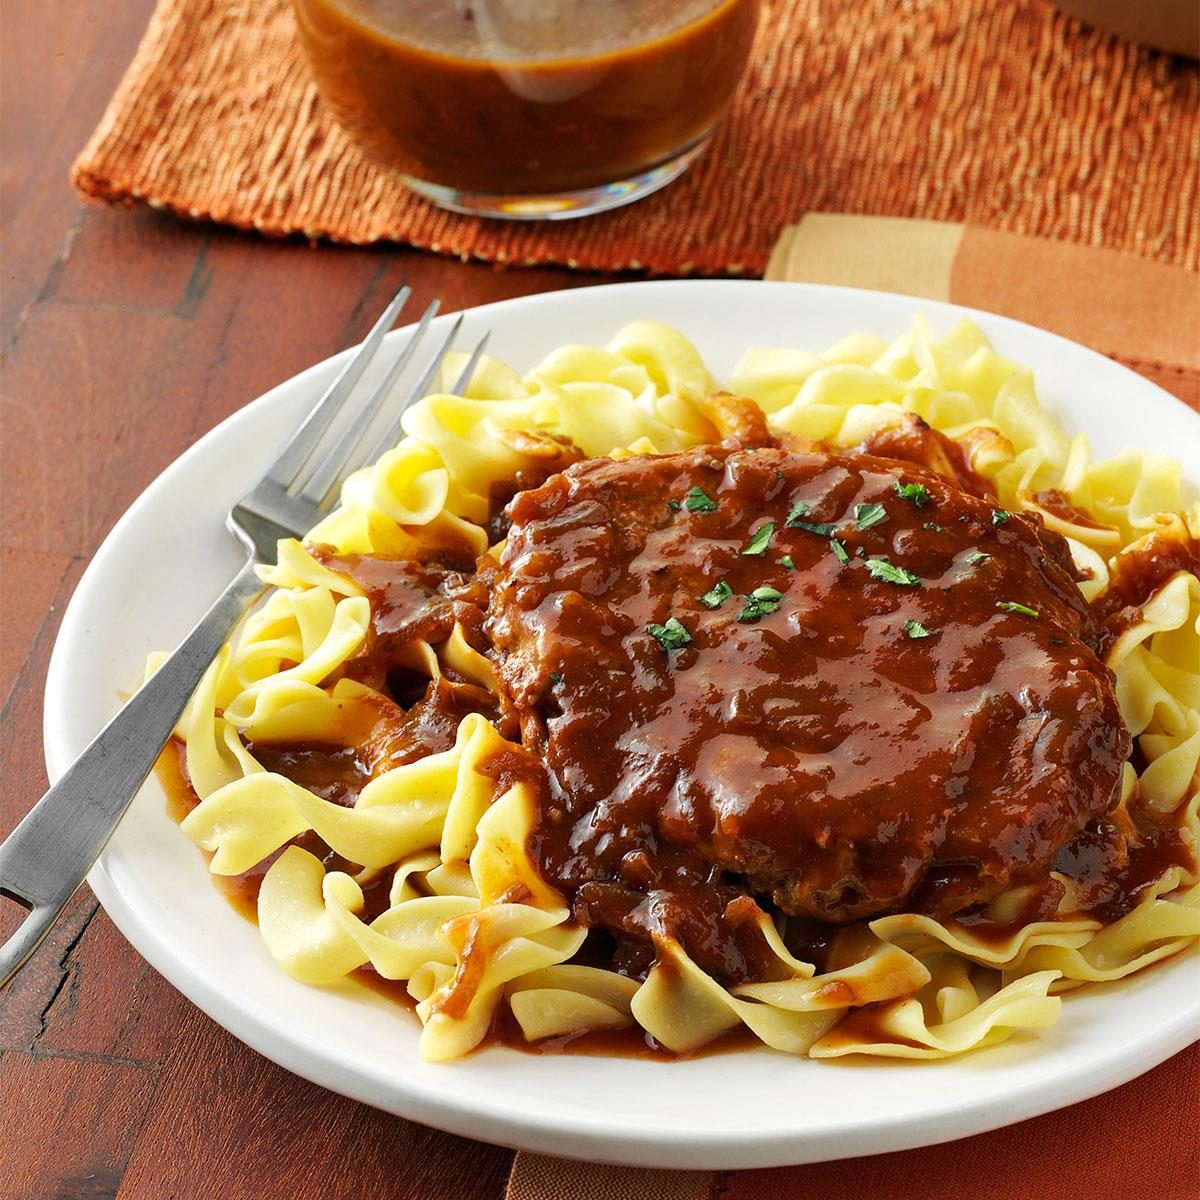 Monday: Salisbury Steak with Onion Gravy